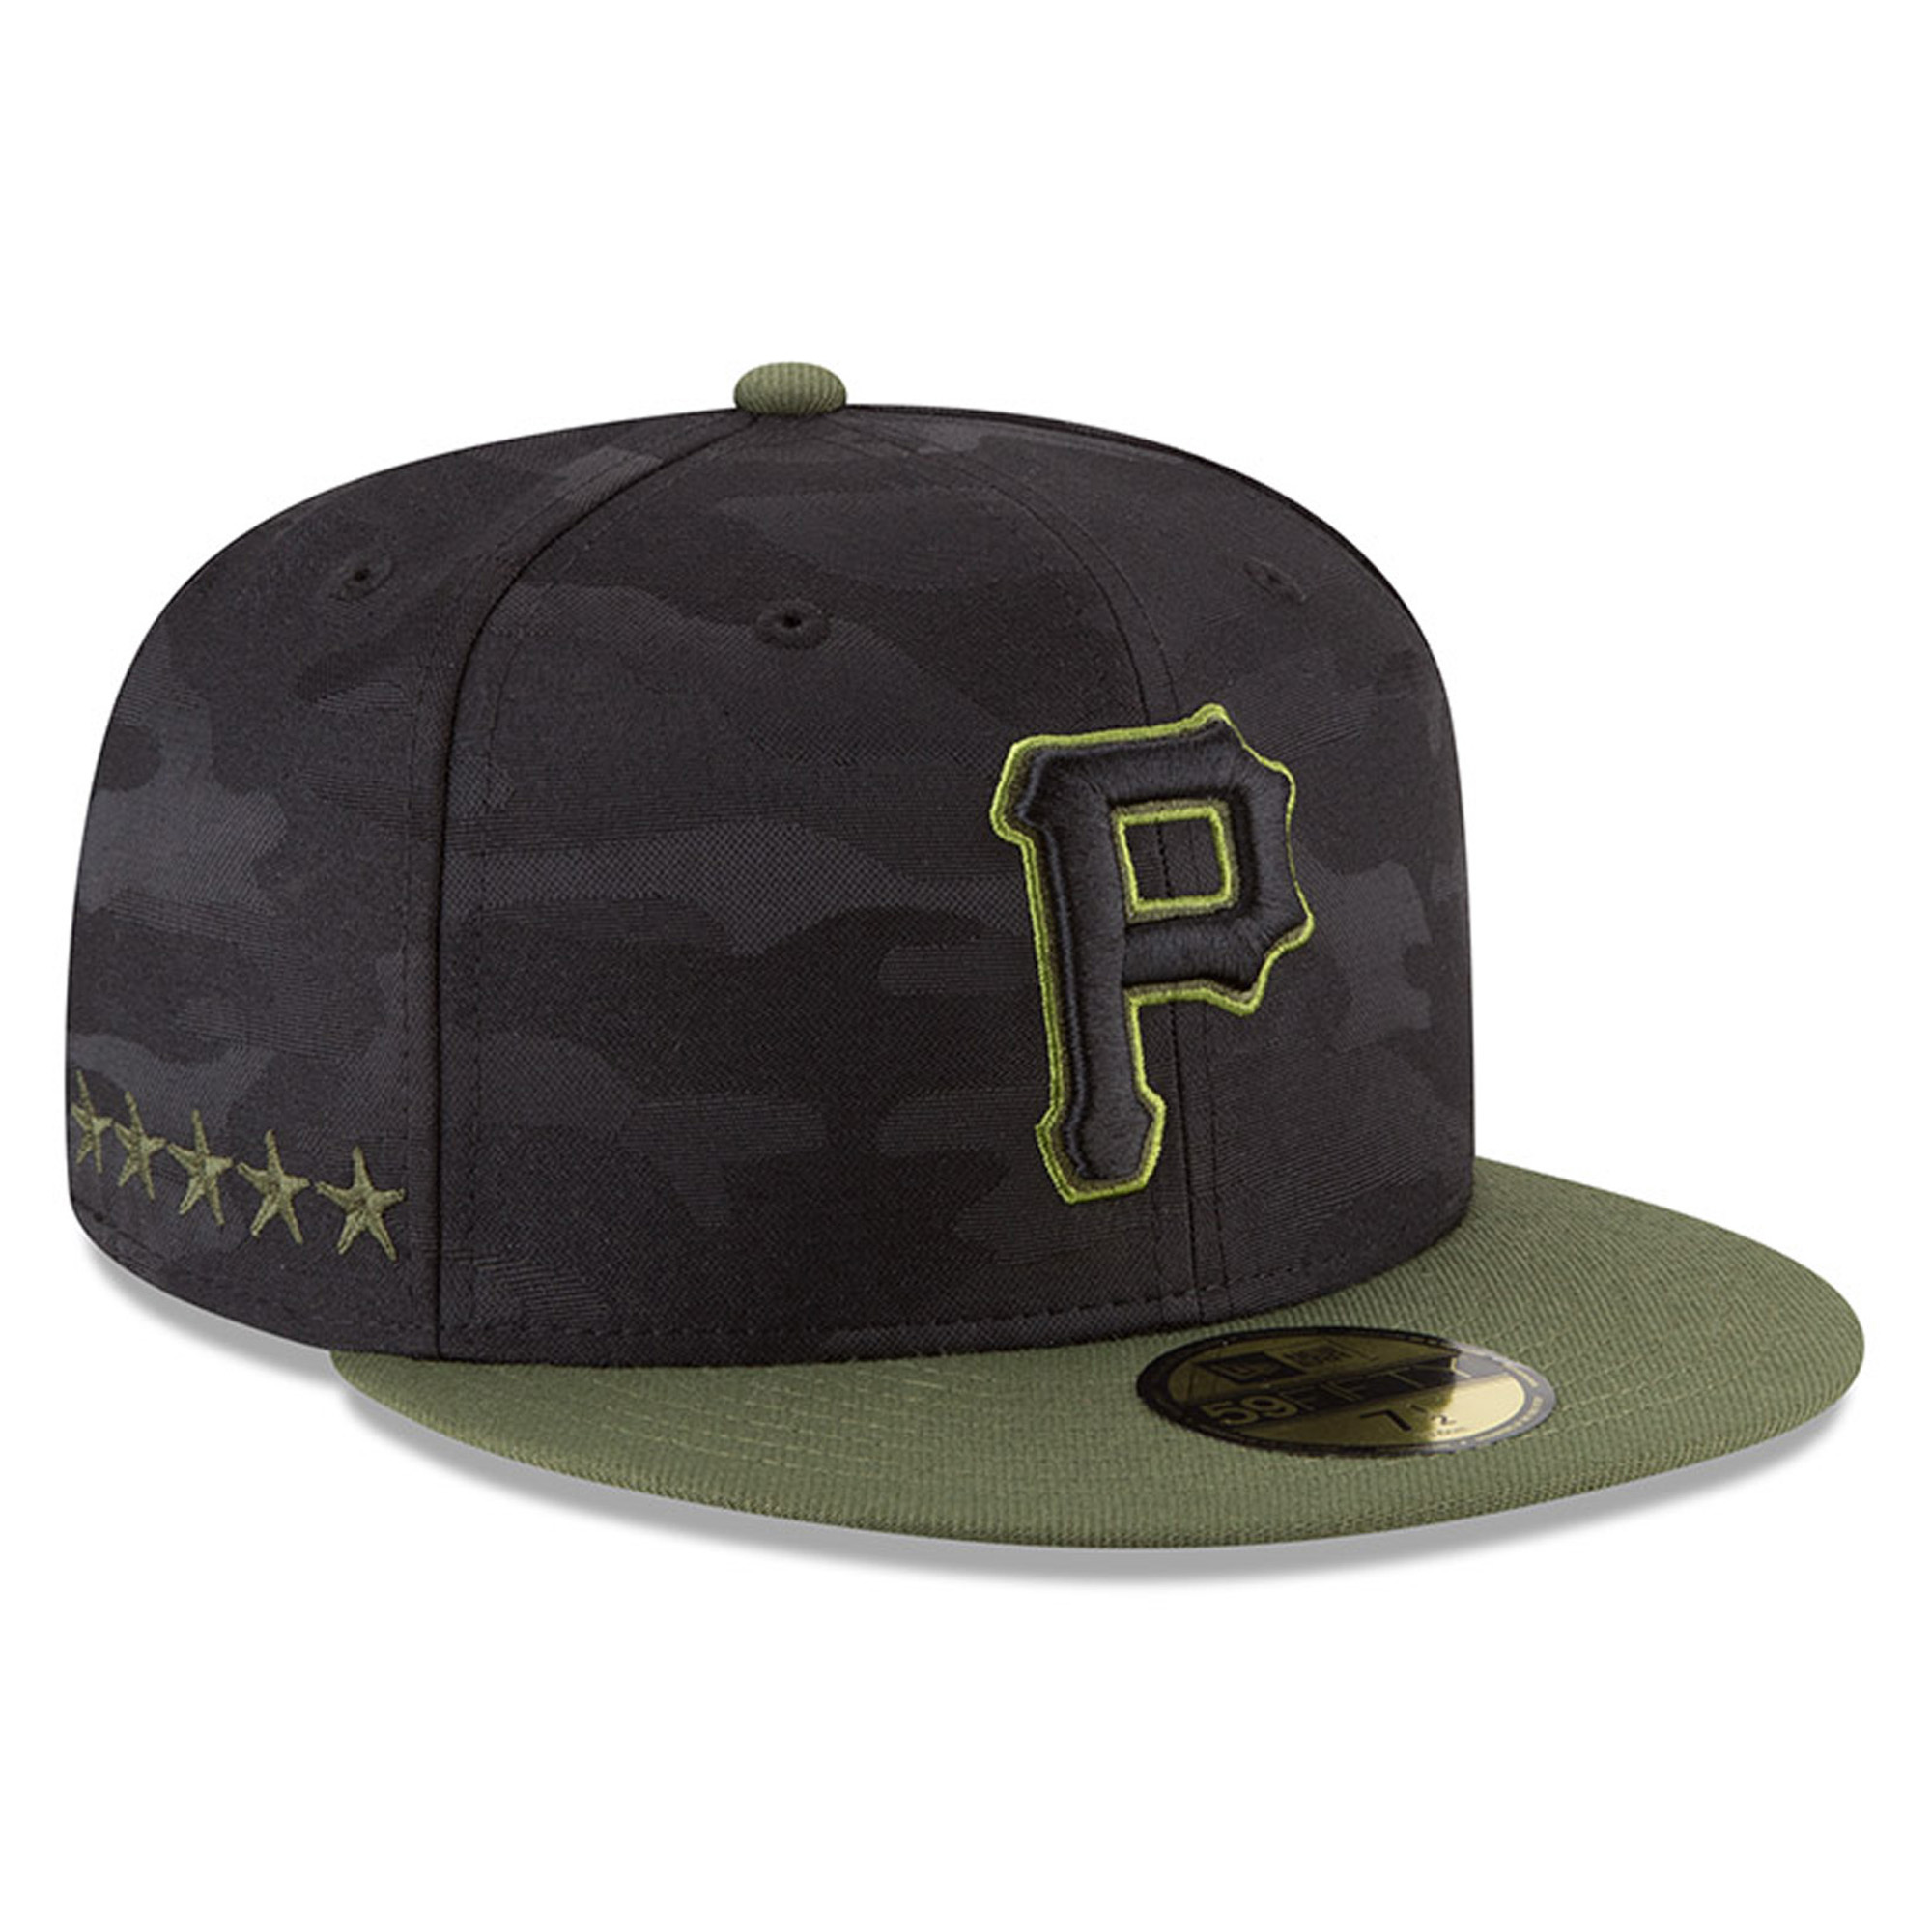 pittsburgh pirates new era 2018 memorial day on-field 59fifty fitted hat - black